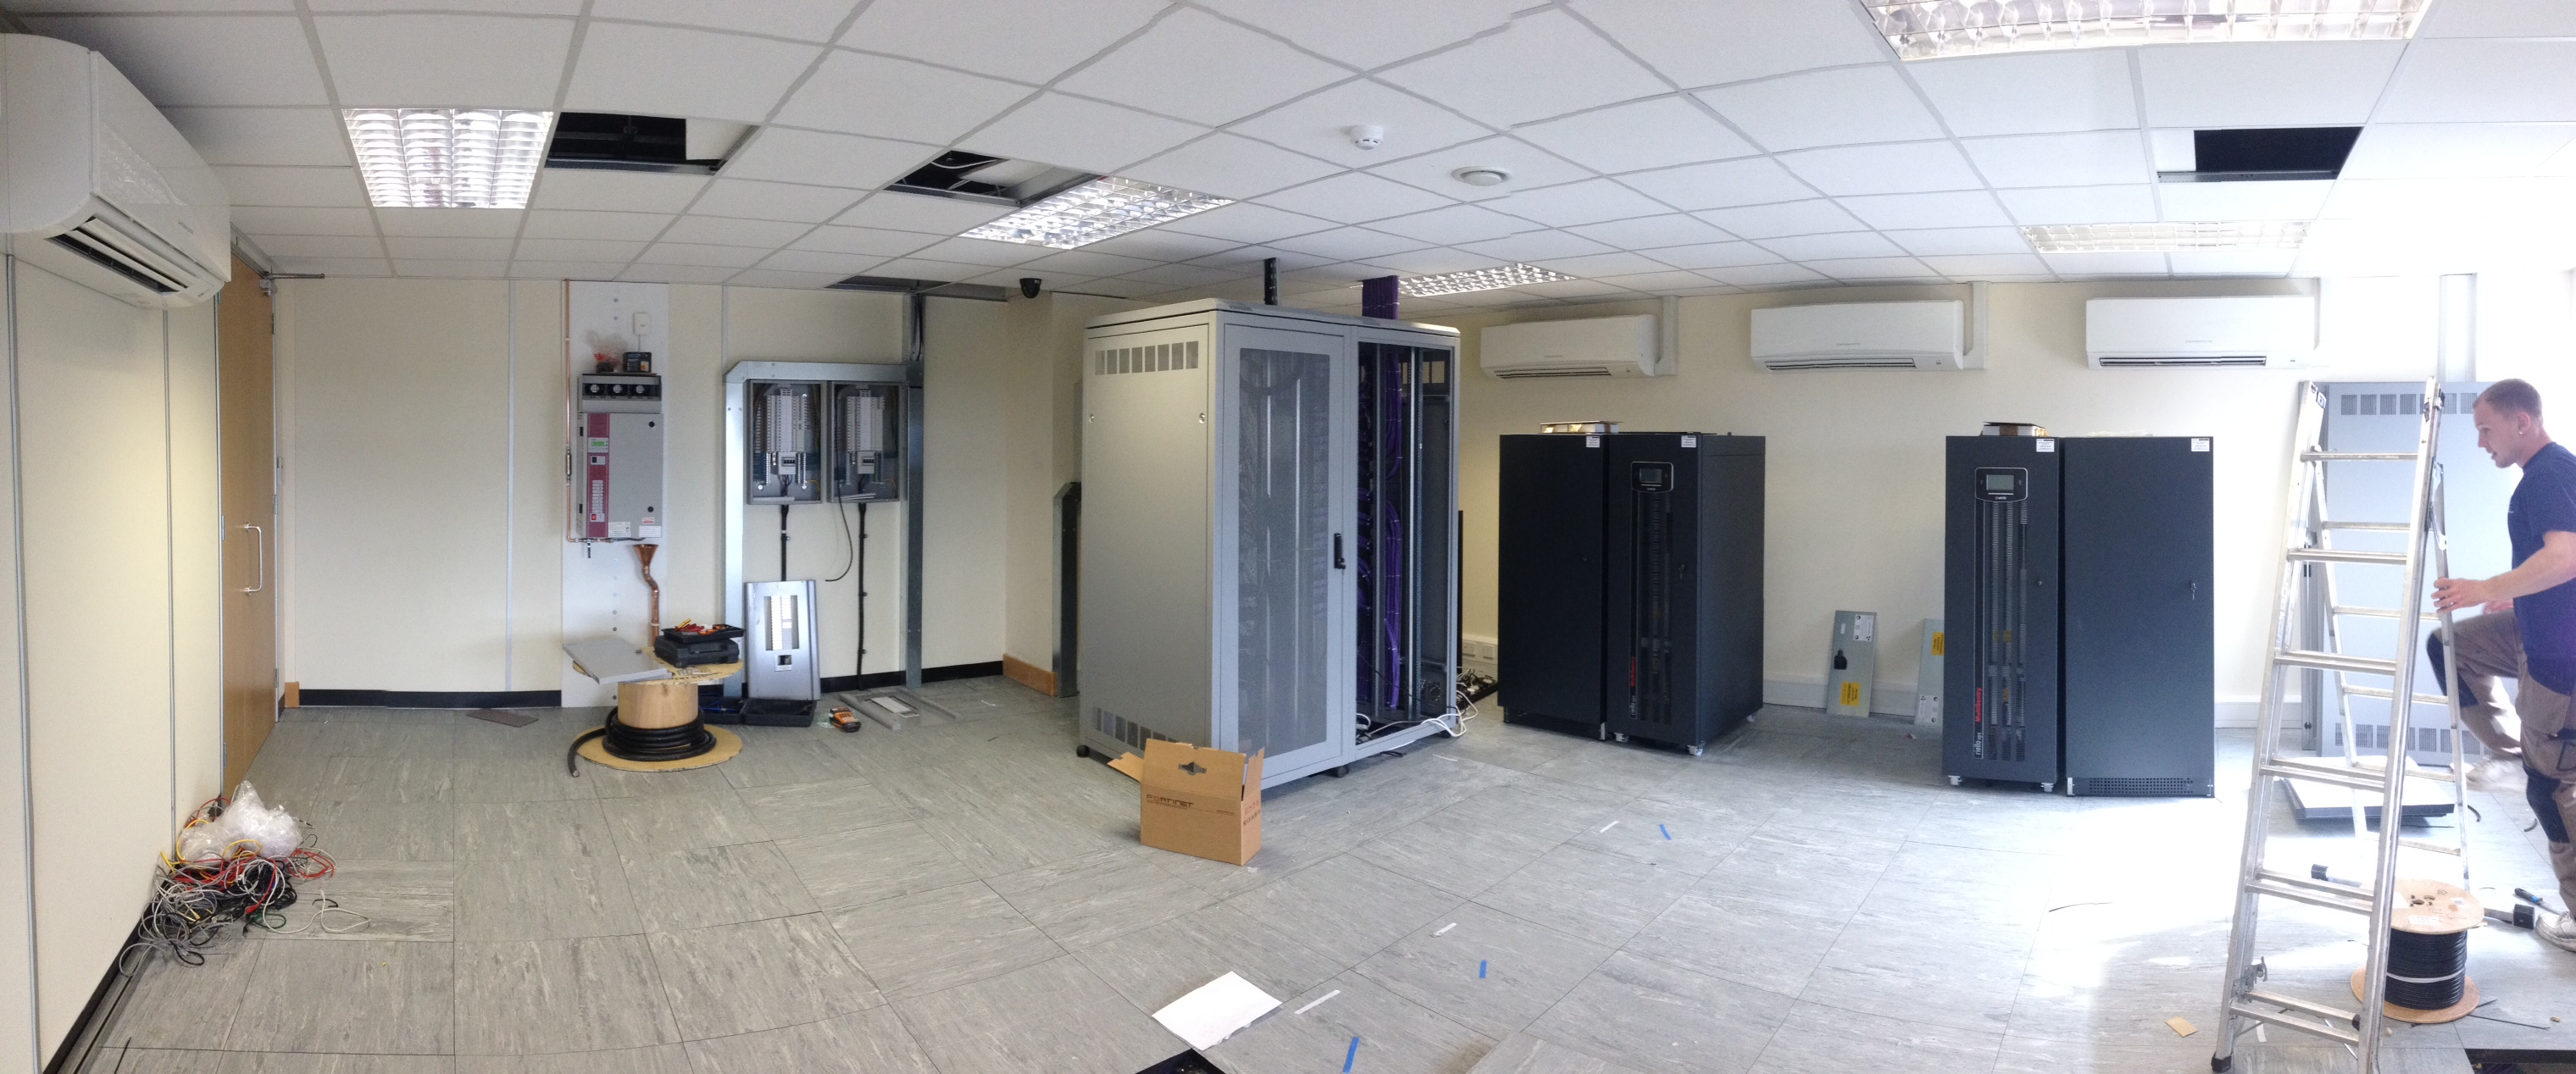 Server Room Air Conditioning At Saga Healthcare Plc